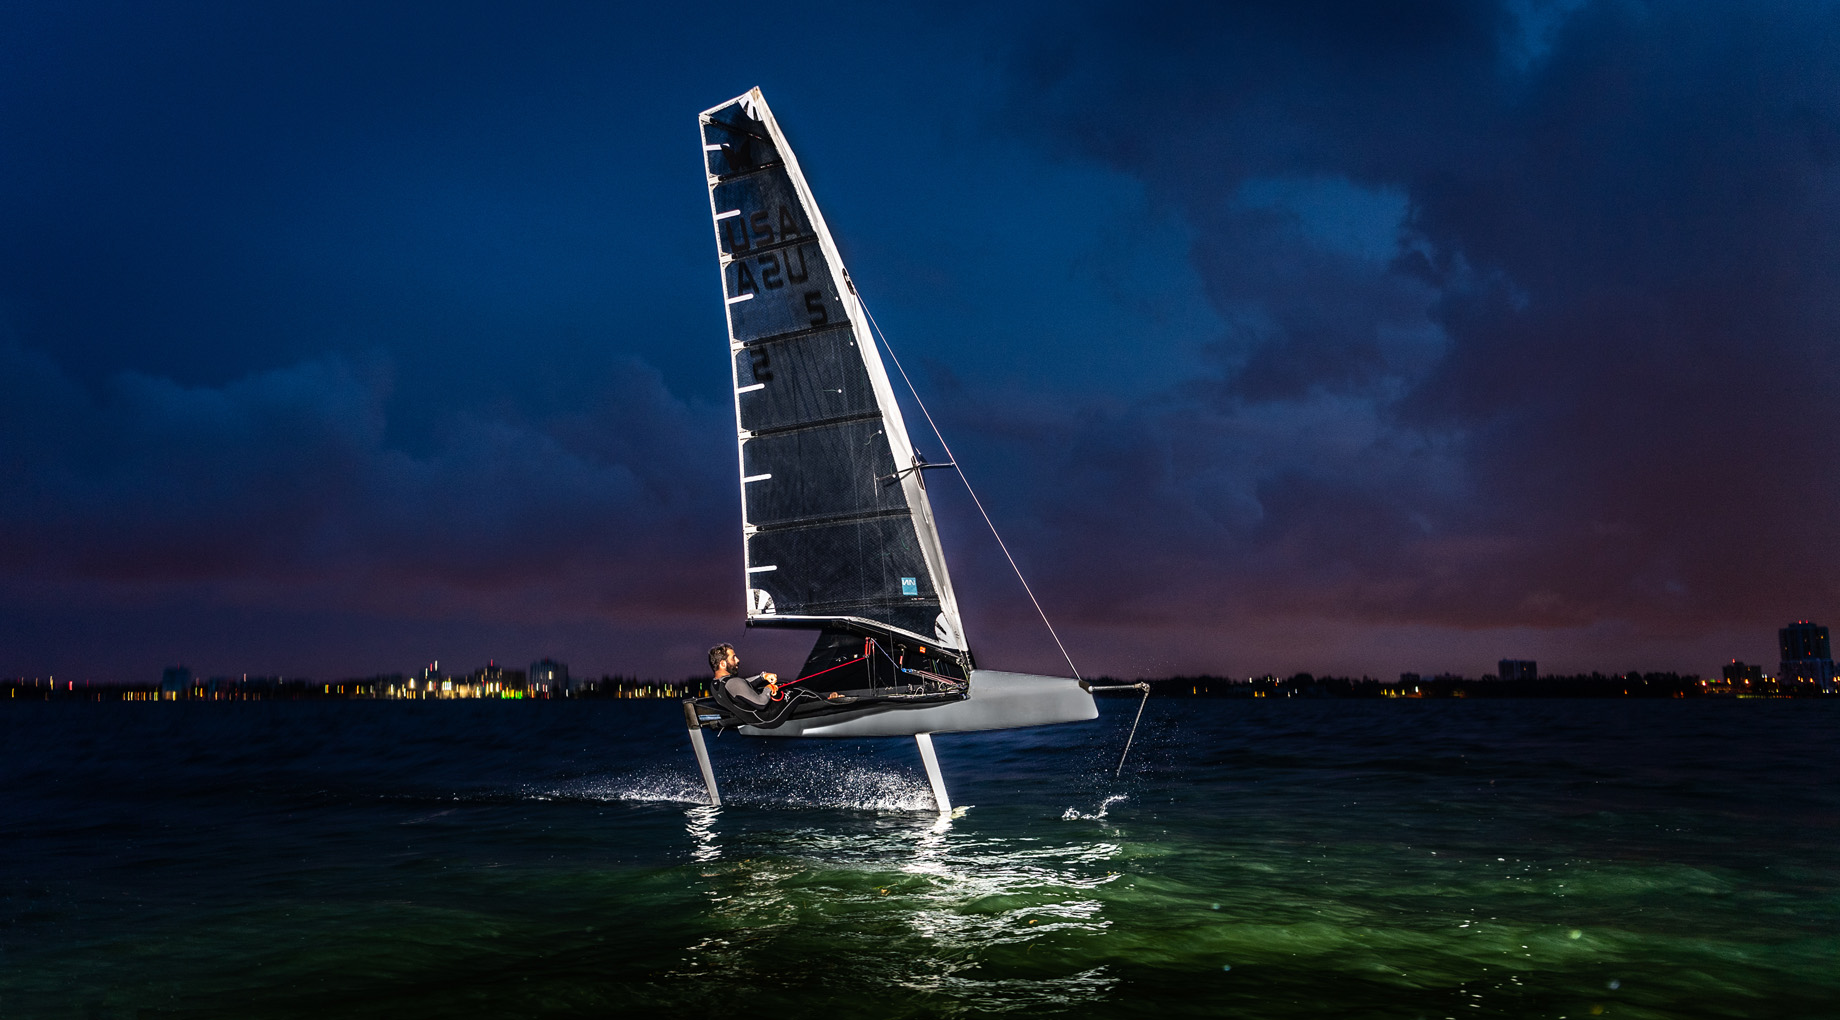 Victor_Diaz_De_Leon_Moth_Sailing_Will_Graham-10